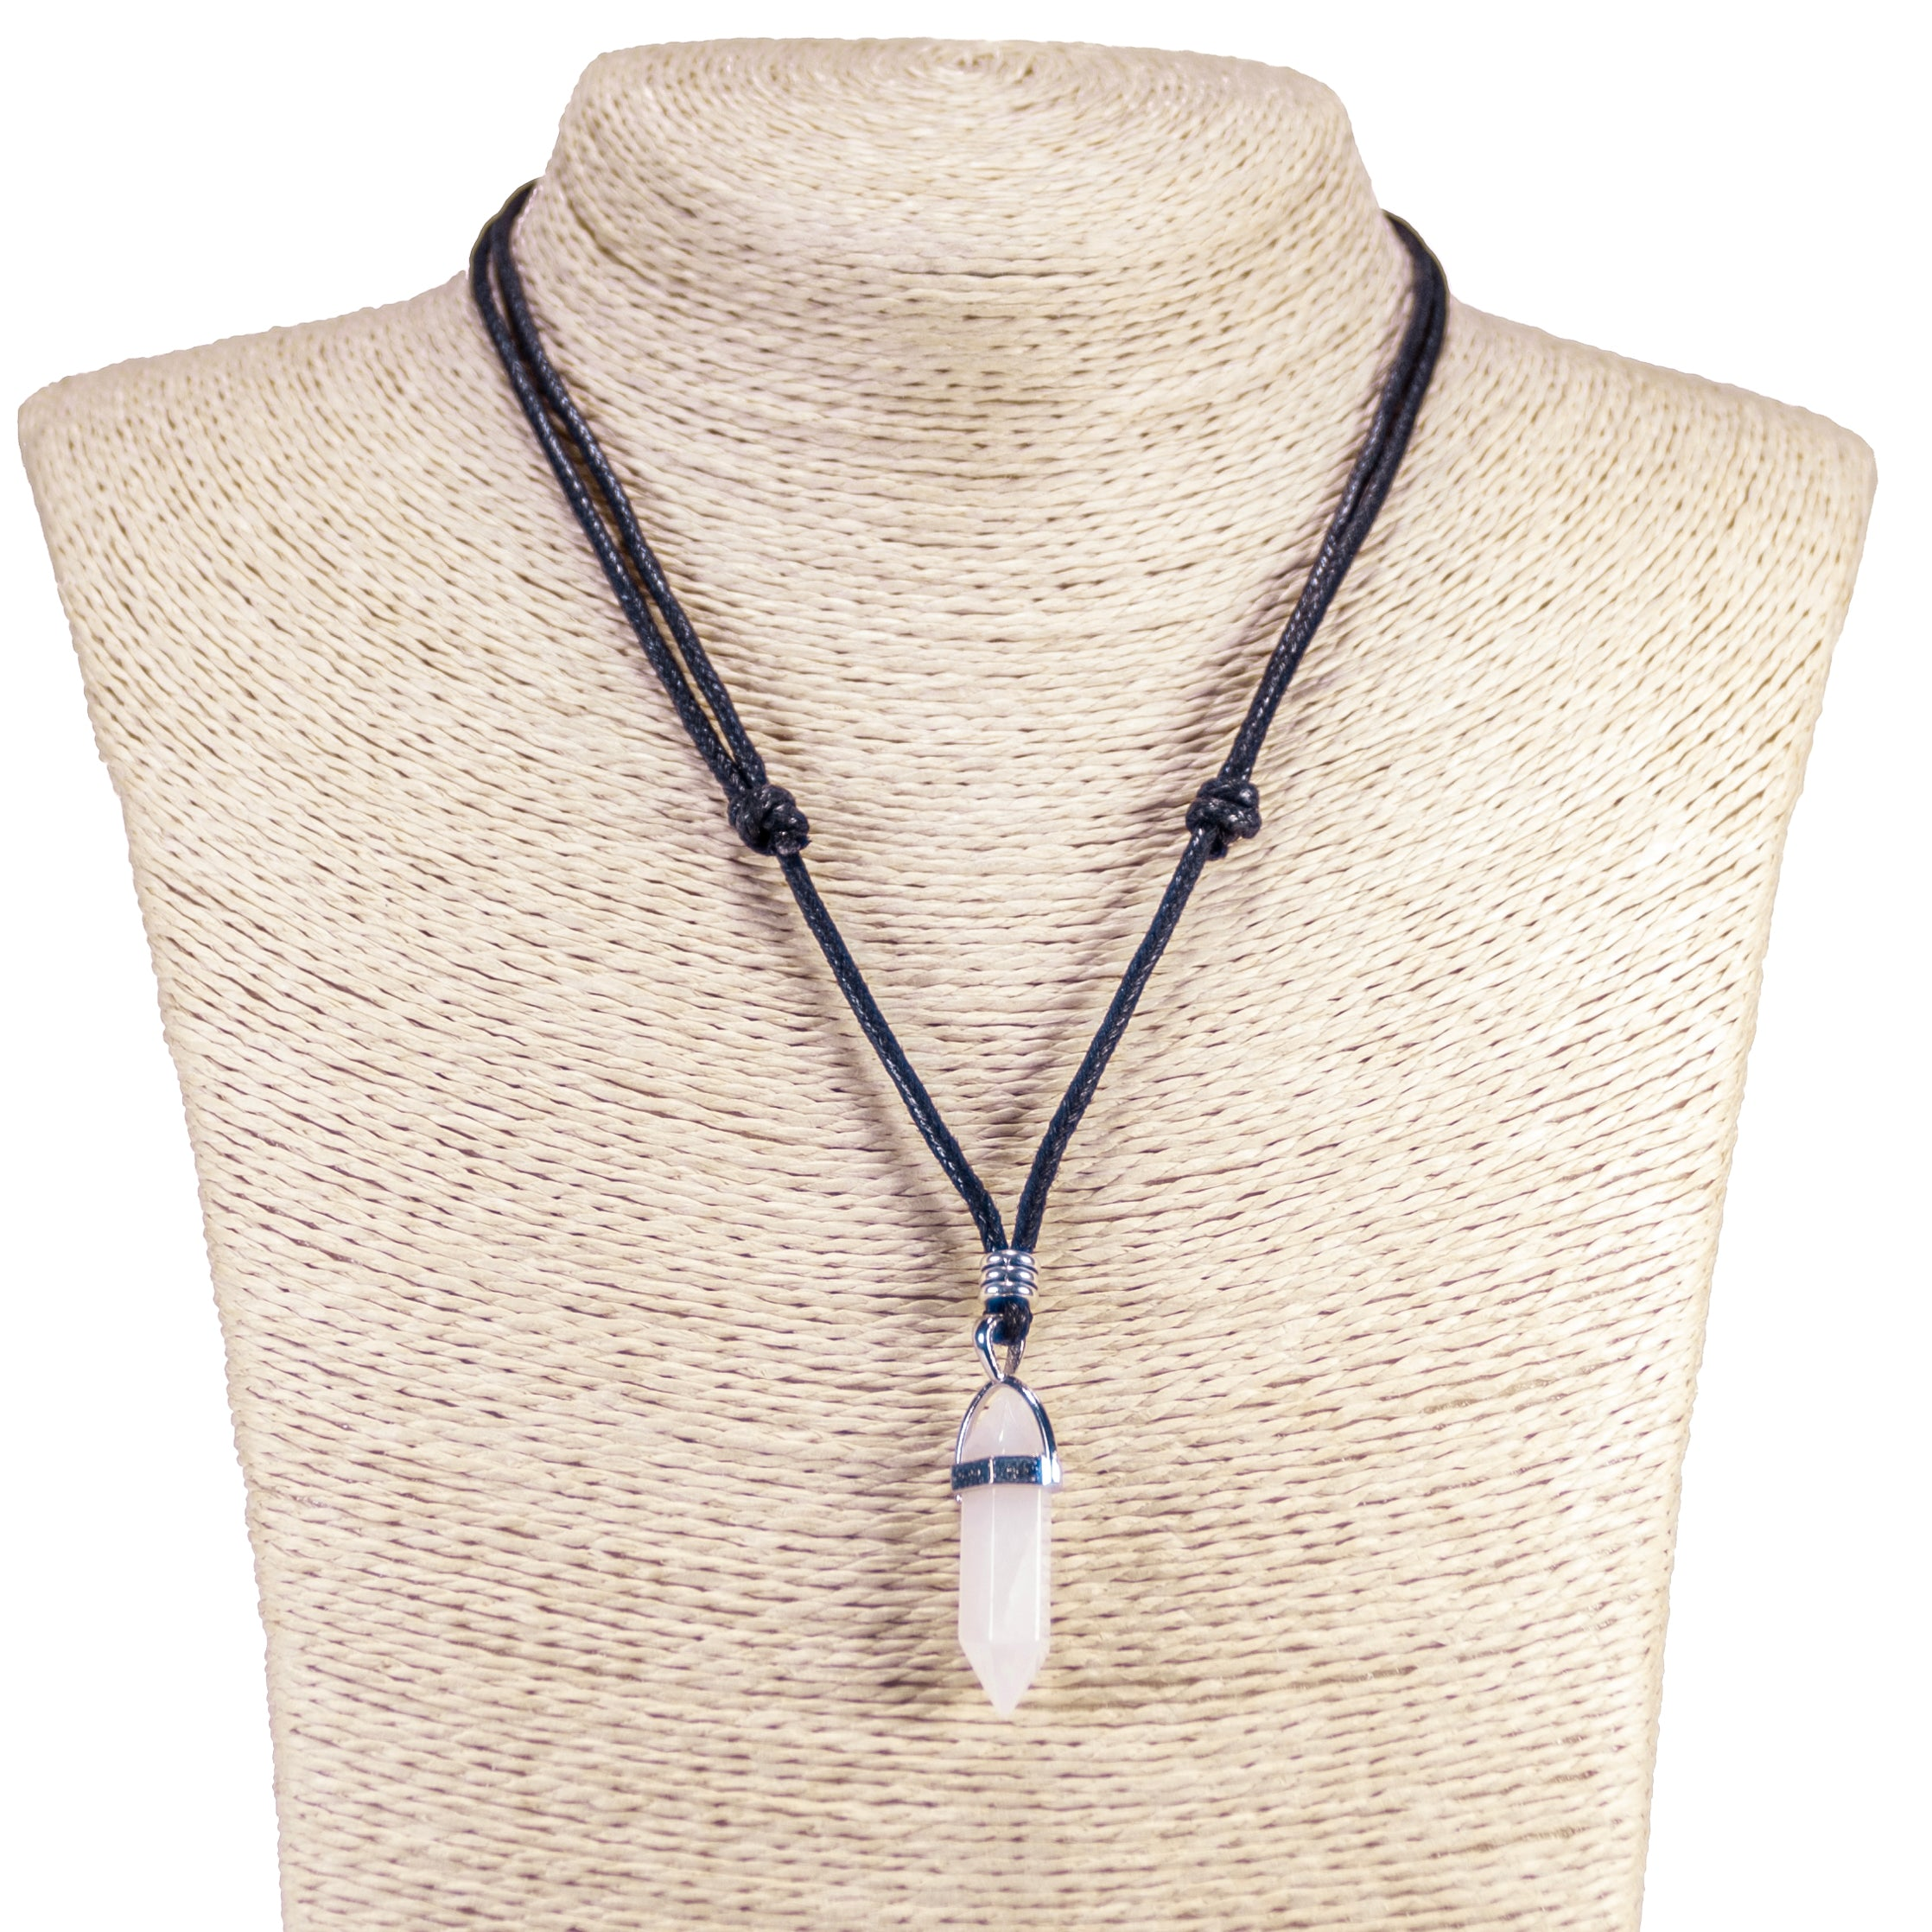 Natural Quartz Crystal Pendant on Adjustable Rope Necklace